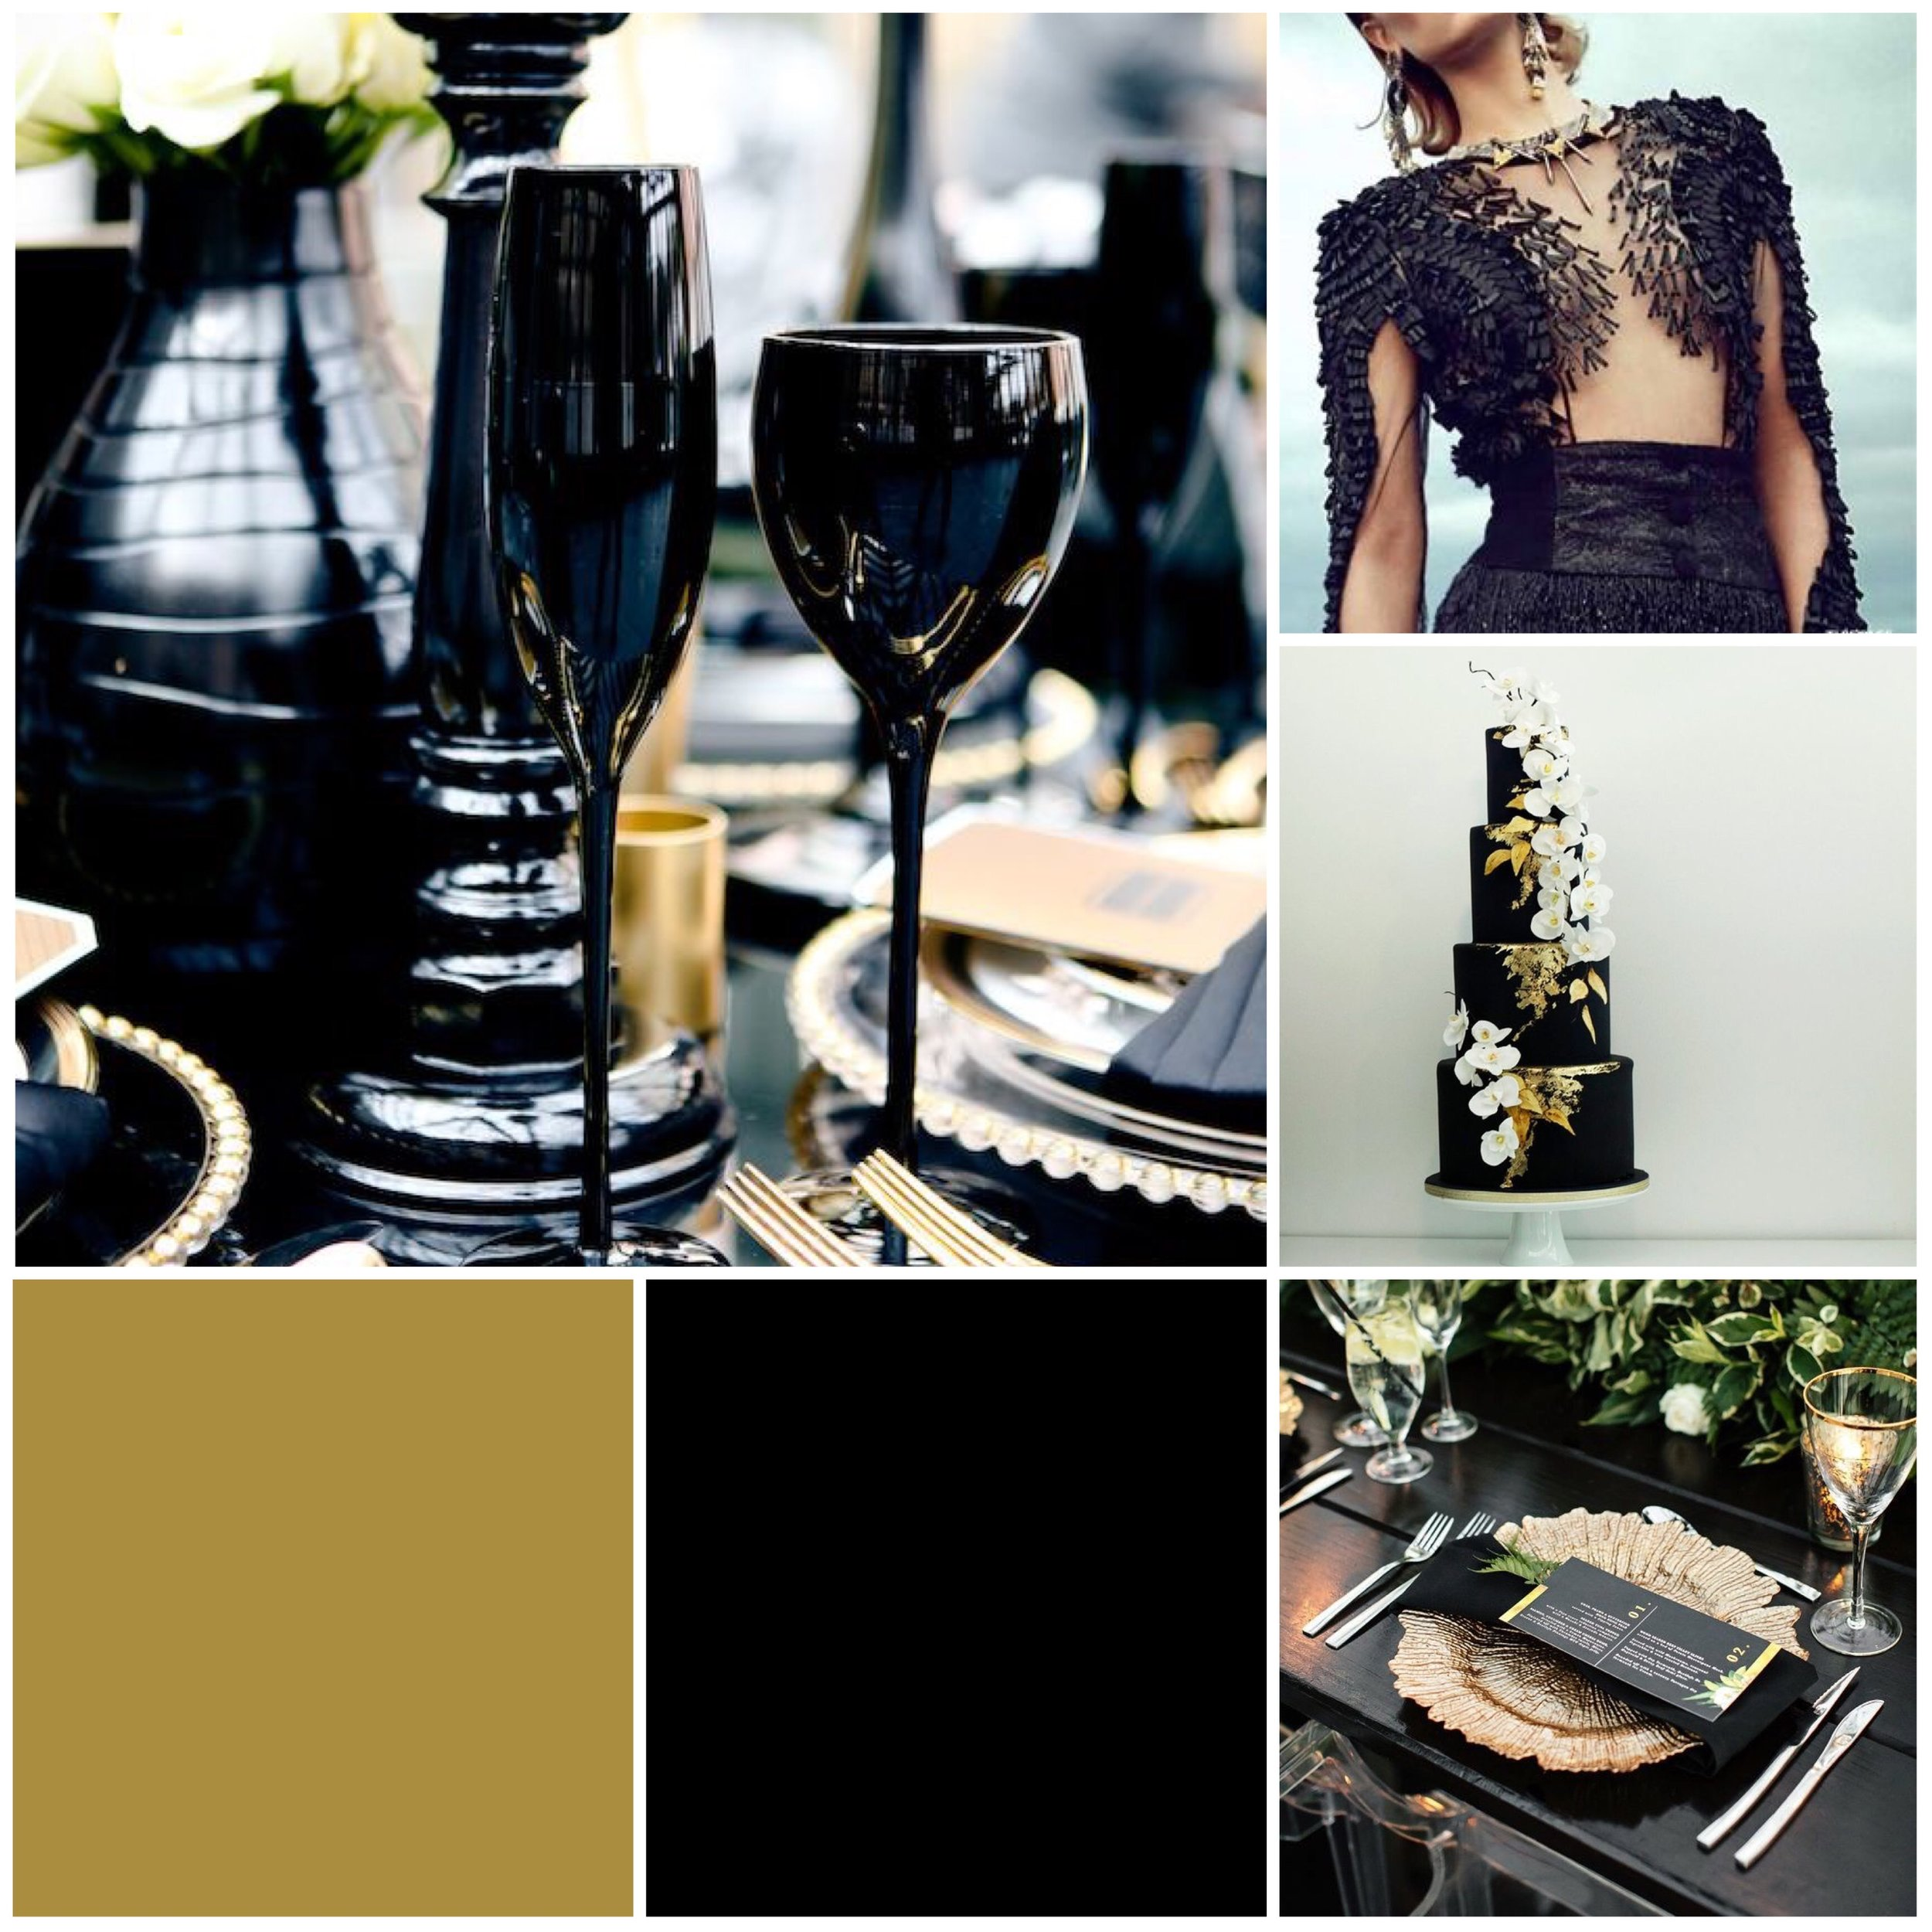 Coal & Gold Moodboard for your wedding inspiration.